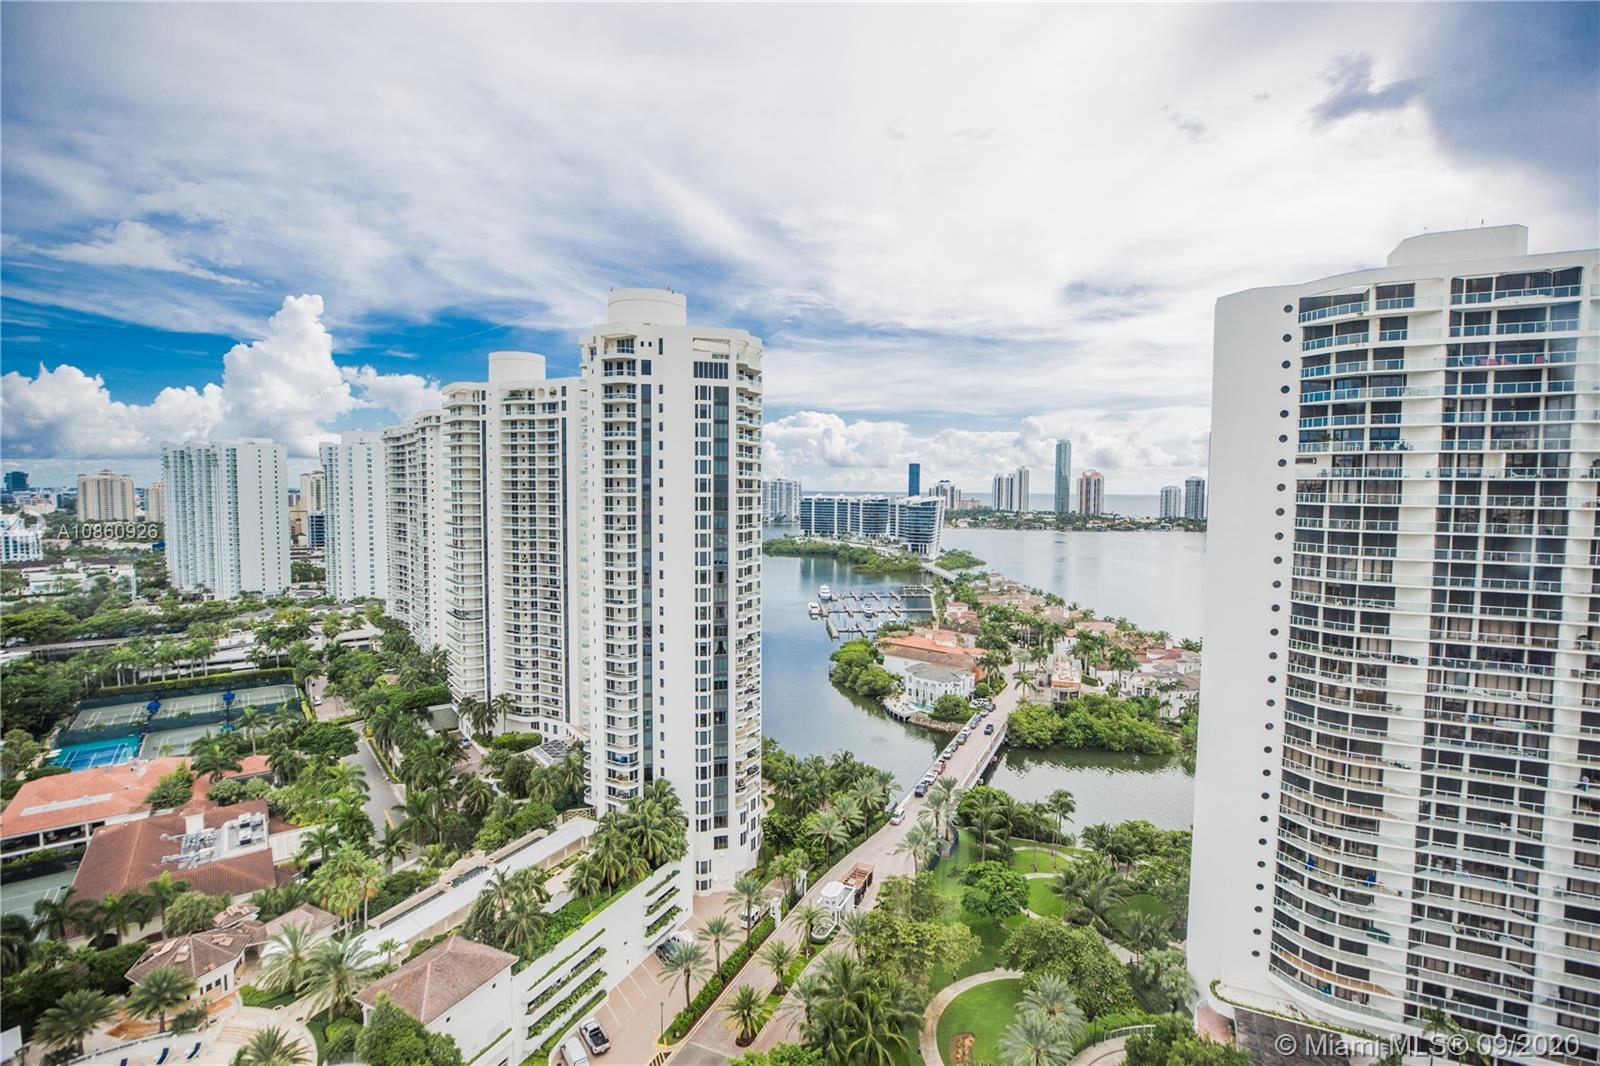 Incredible Opportunity to Own a Double Unit in Bellini at Williams Island! Stunning Views of Bay & Ocean. Super Spacious Floor Plan w/ 10' Ceilings. Floor to Ceiling Glass Windows all through out Home as well as White Marble Floors, Electric Window Shades, His & Hers Baths & Closets! Unit is Offered Fully Furnished! Live In a Penthouse w/o Paying a Penthouse Price! TENANT OCCUPIED, 24-48 HR NOTICE REQUIRED